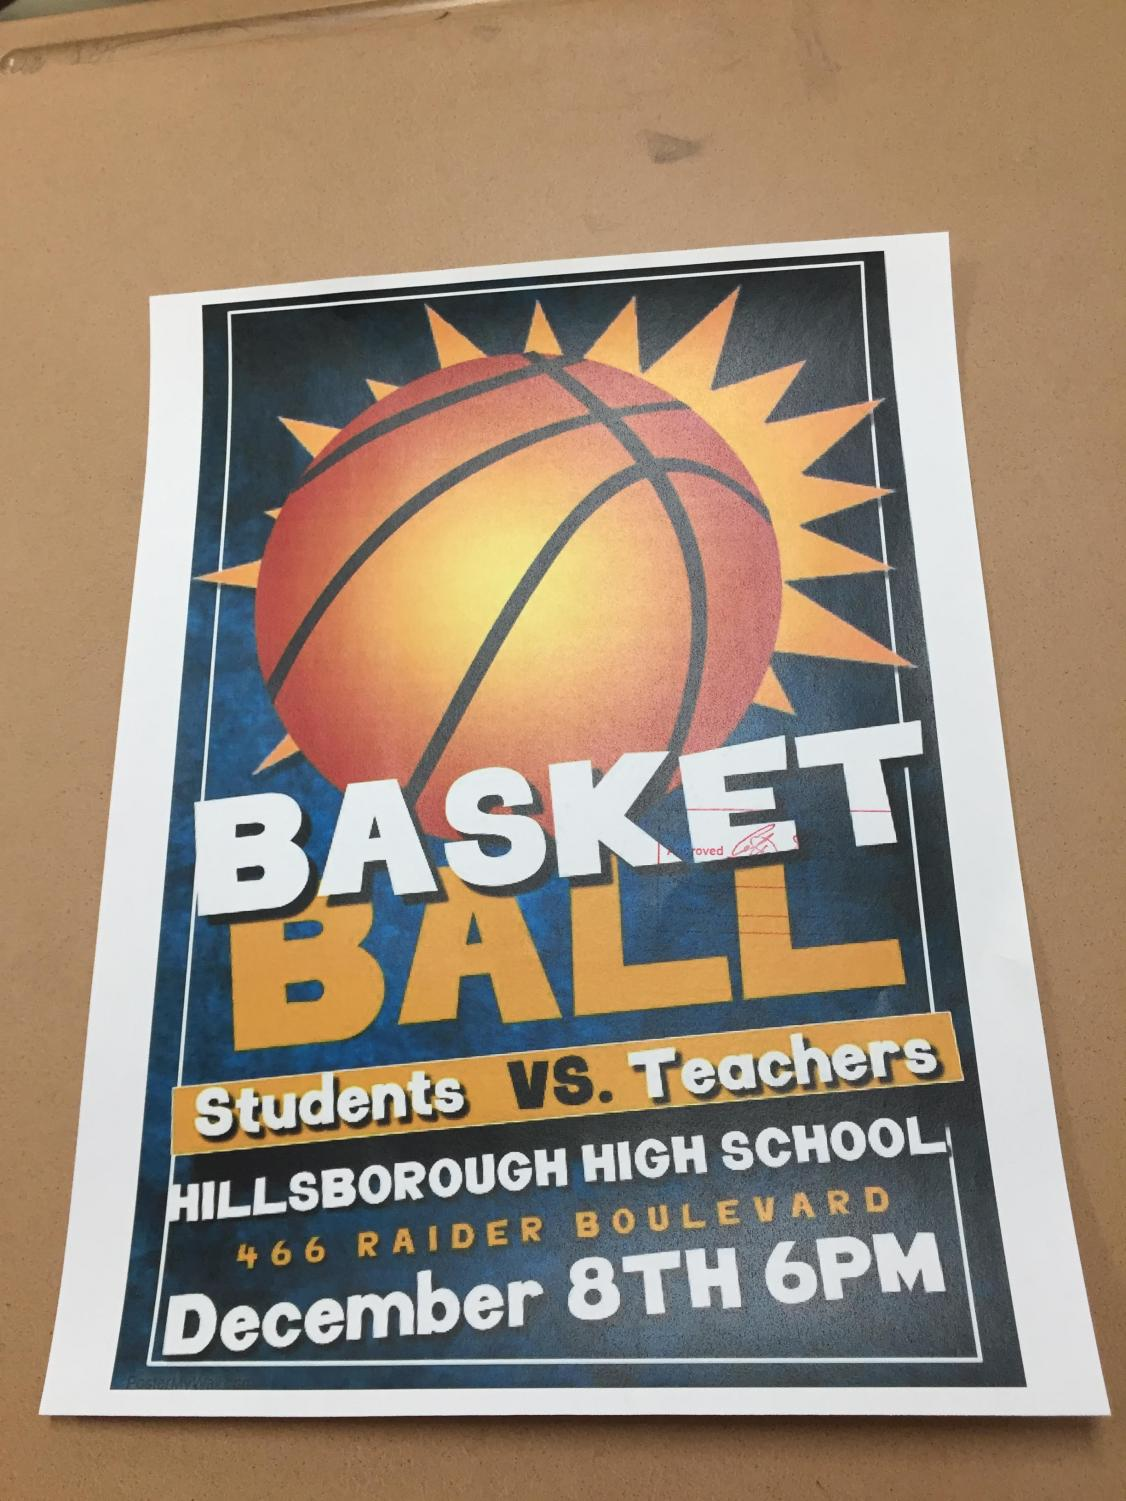 The Student vs. Teachers basketball game is slated for Dec. 8.